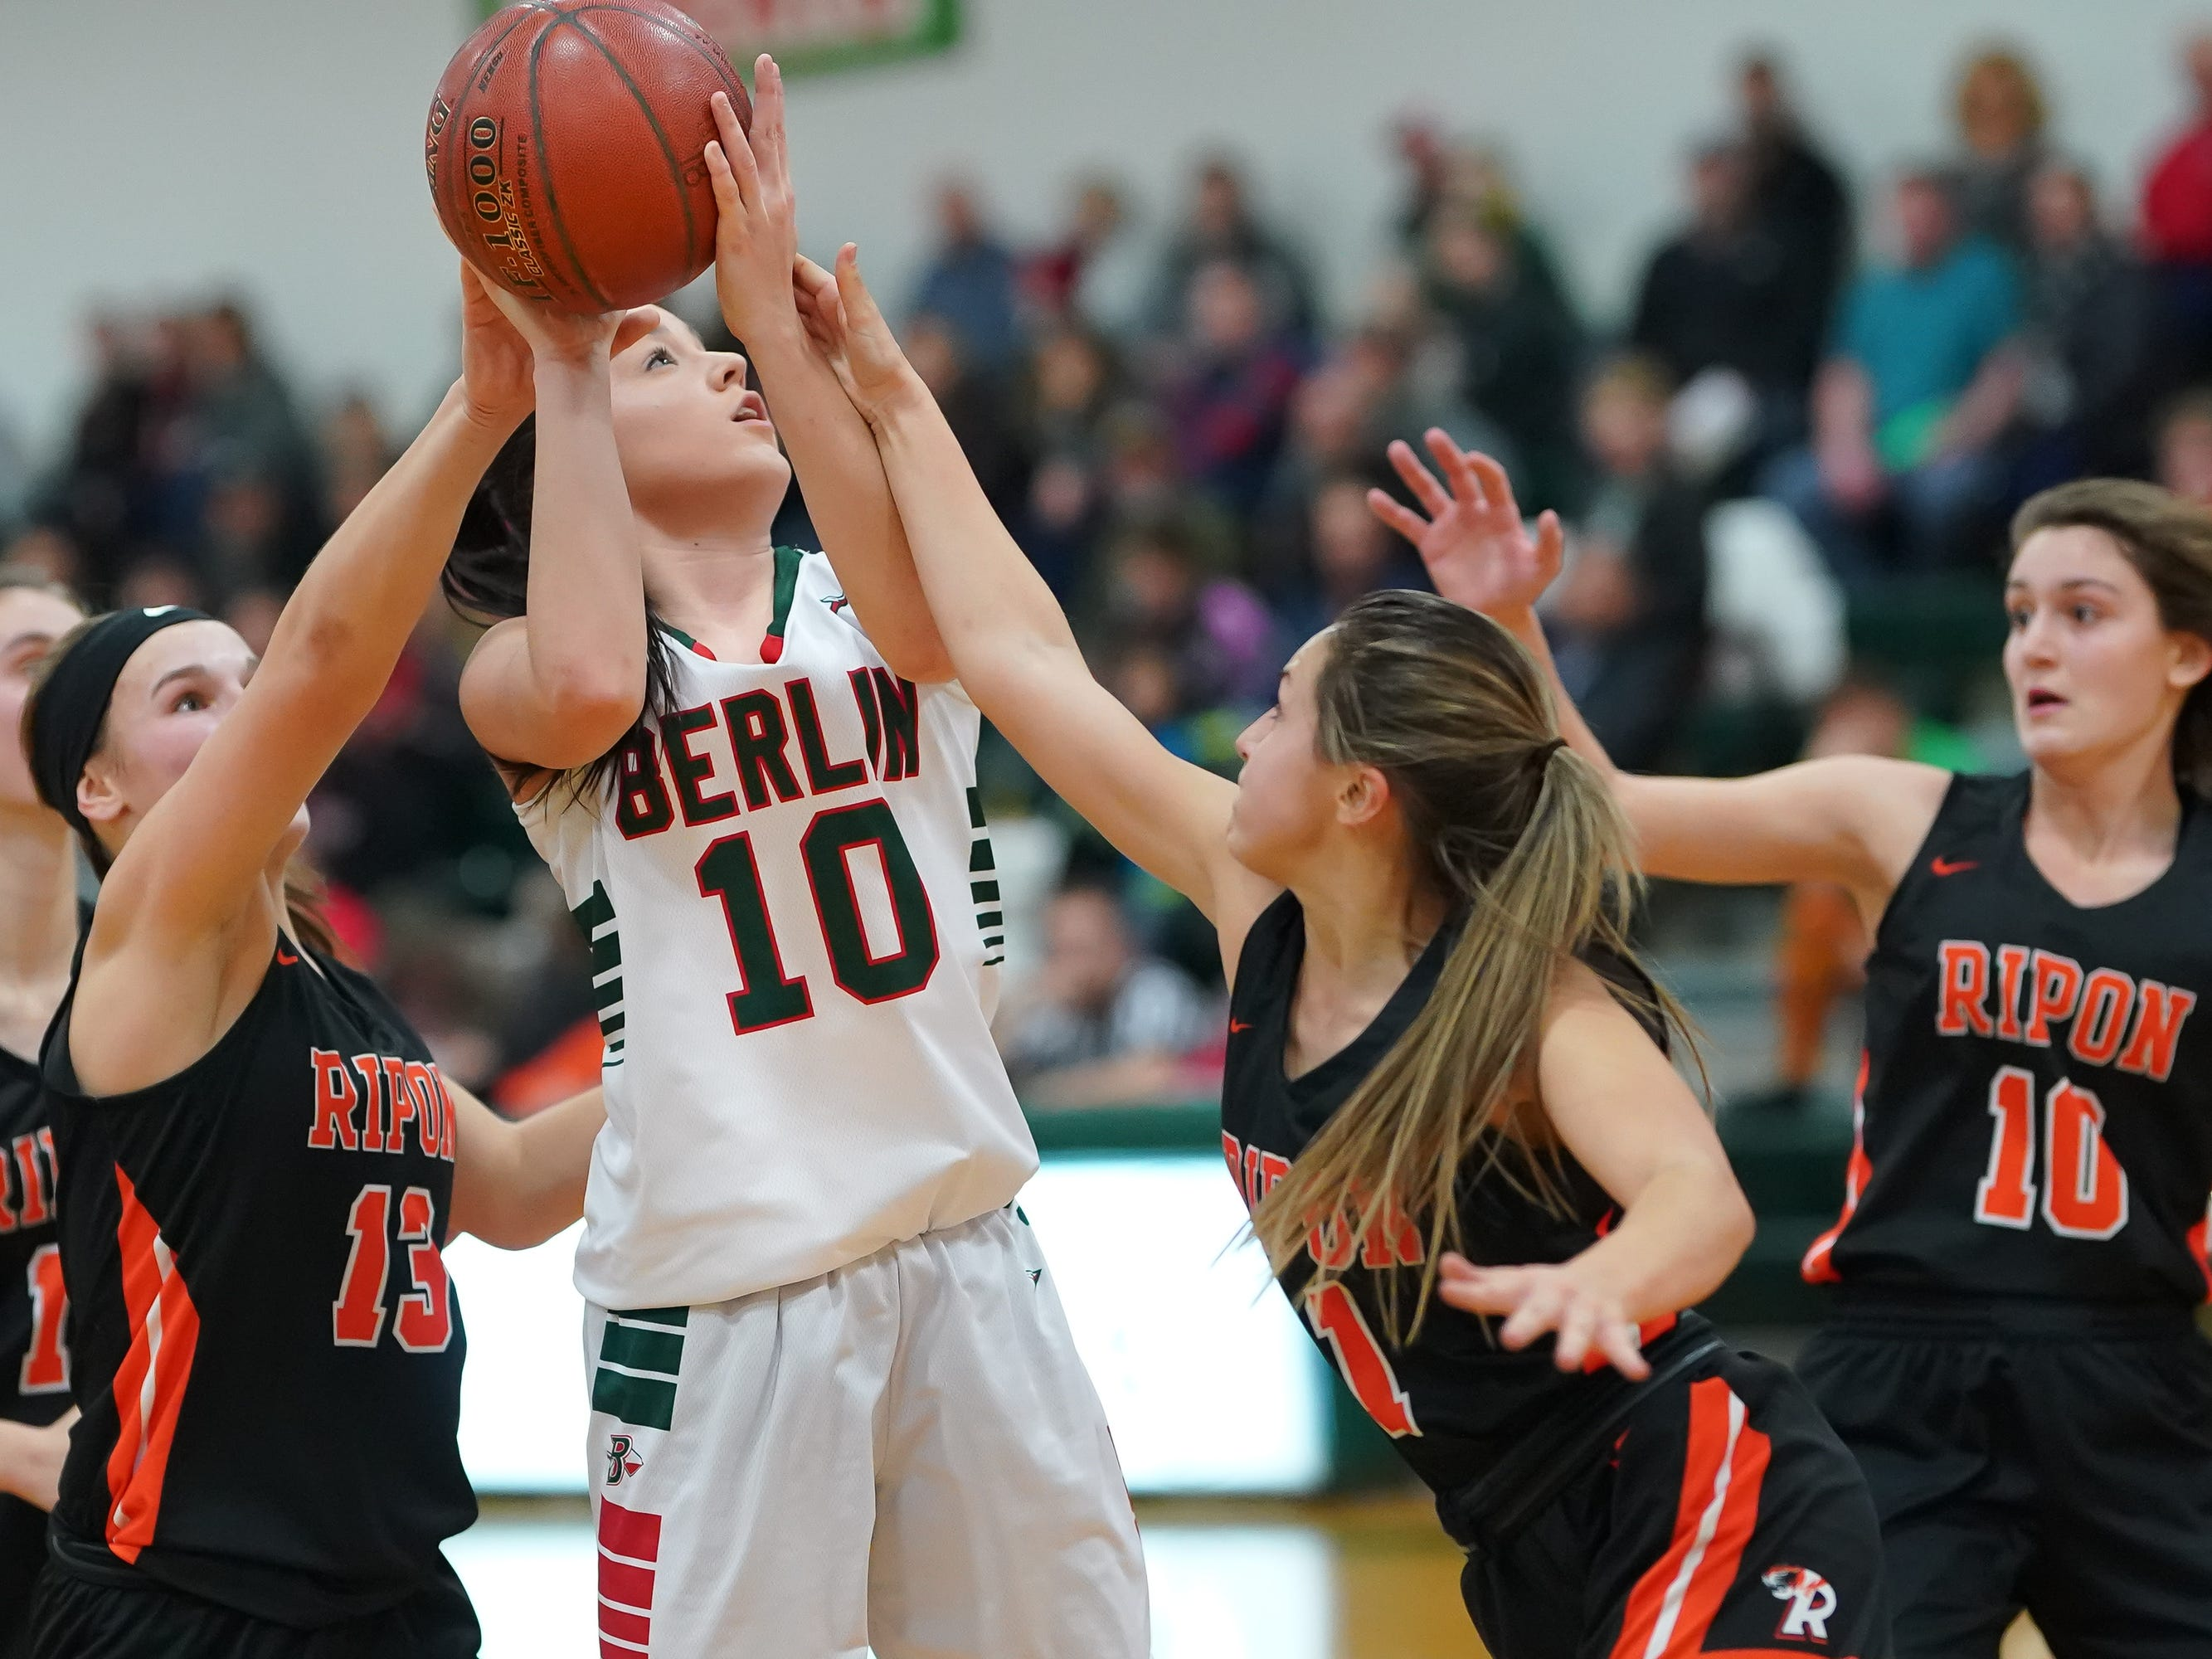 Kara Block (10) of Berlin tries to get a shot while double teamed. The Berlin Indians hosted the Ripon Tigers in an East Central Conference girls basketball matchup Friday evening, December 21, 2018.